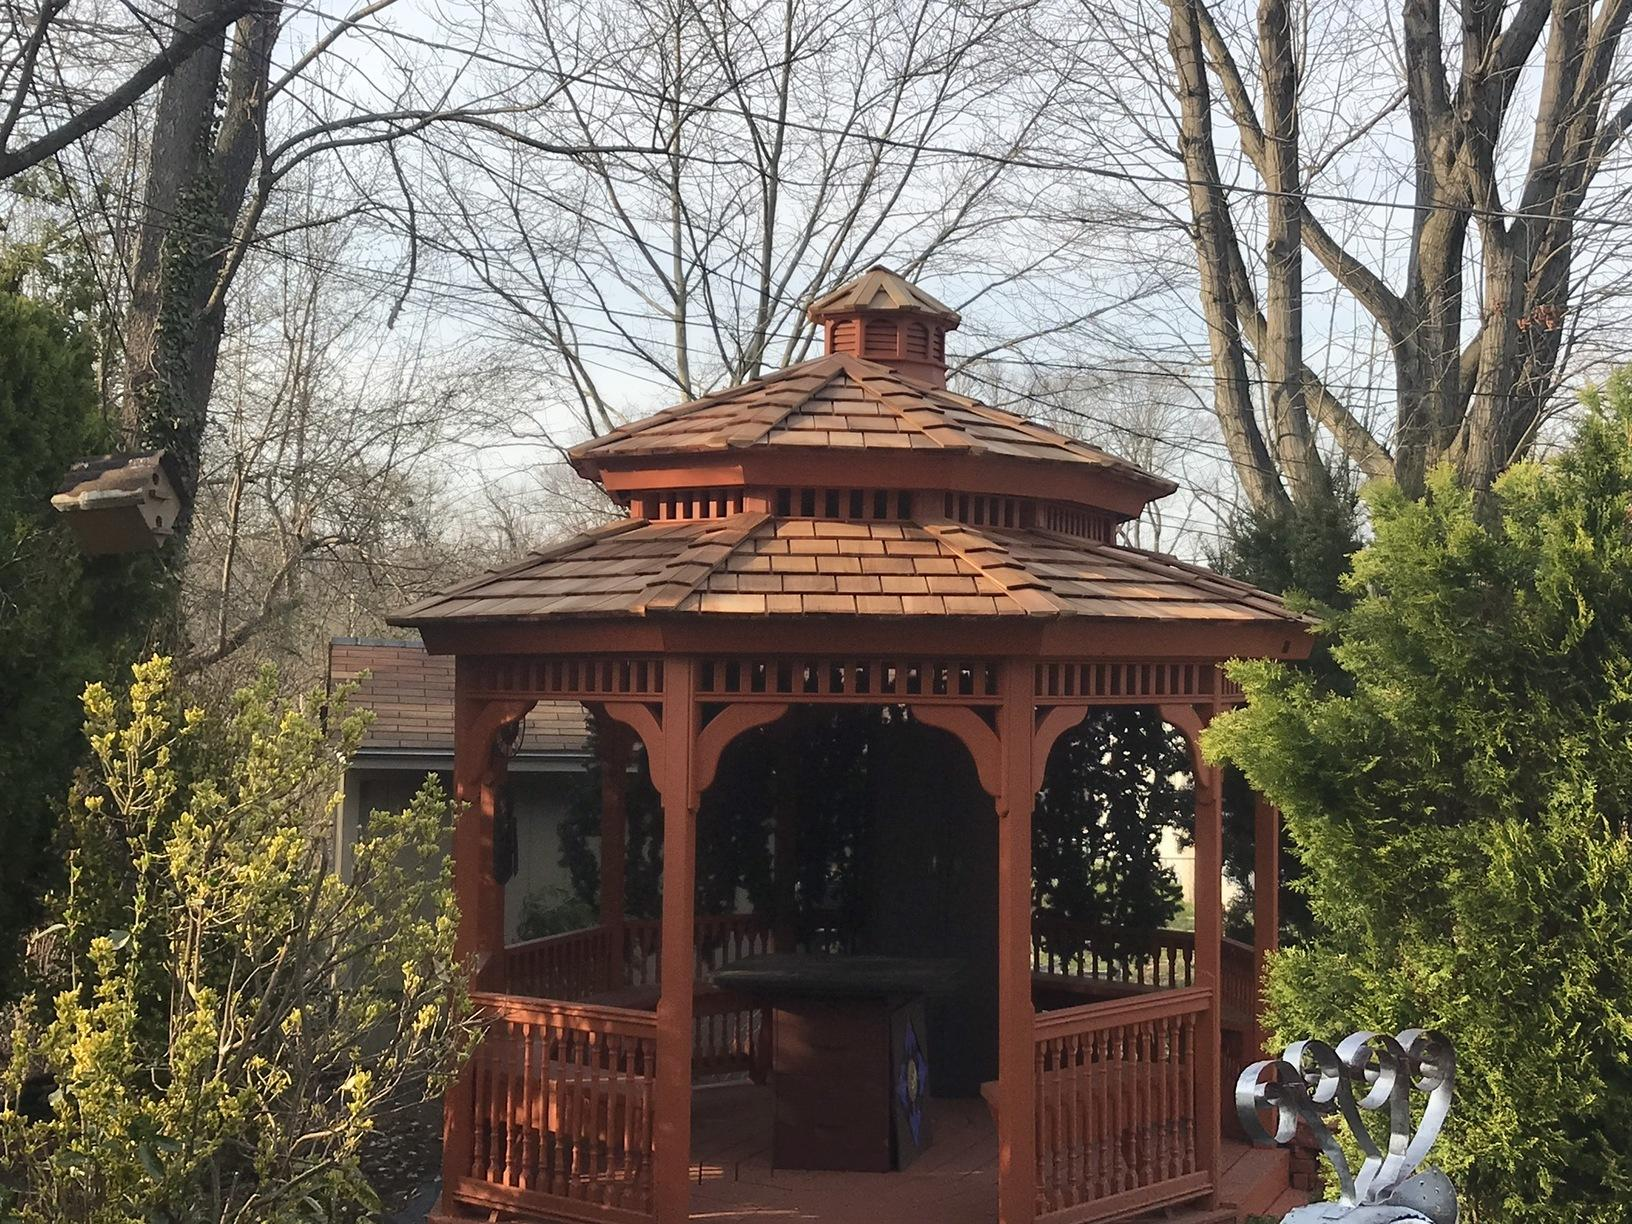 New Cedar Shake Roof Installed in Norristown Pa - After Photo